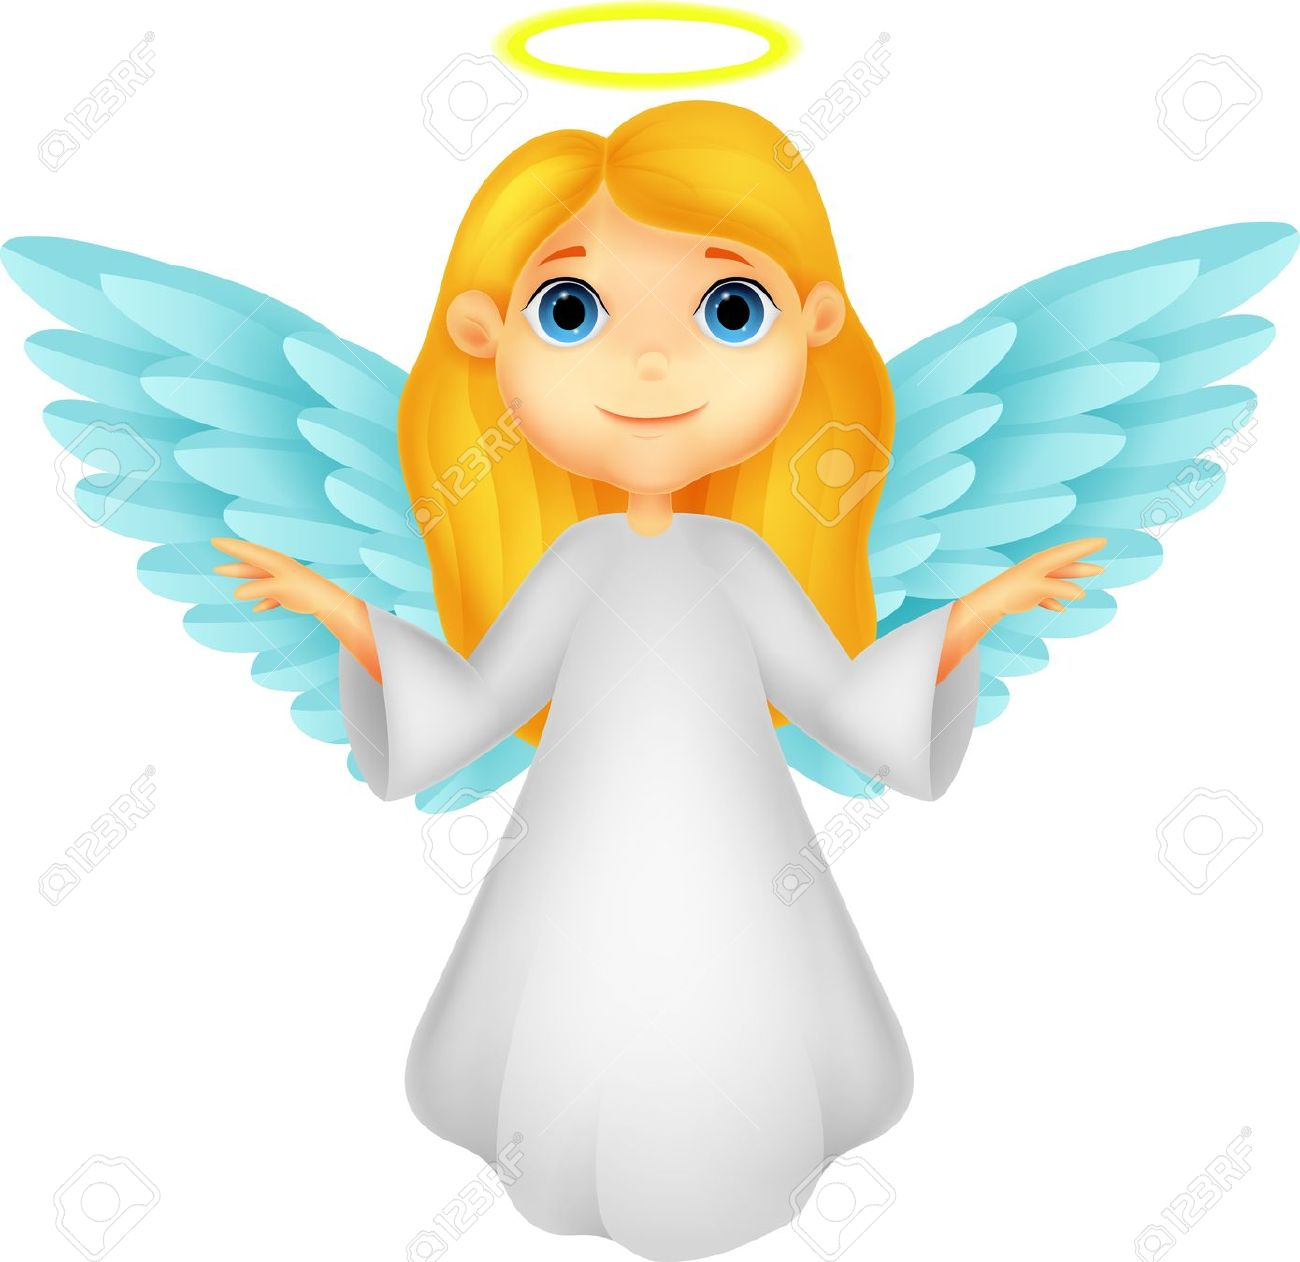 Angel Clipart & Angel Clip Art Images.